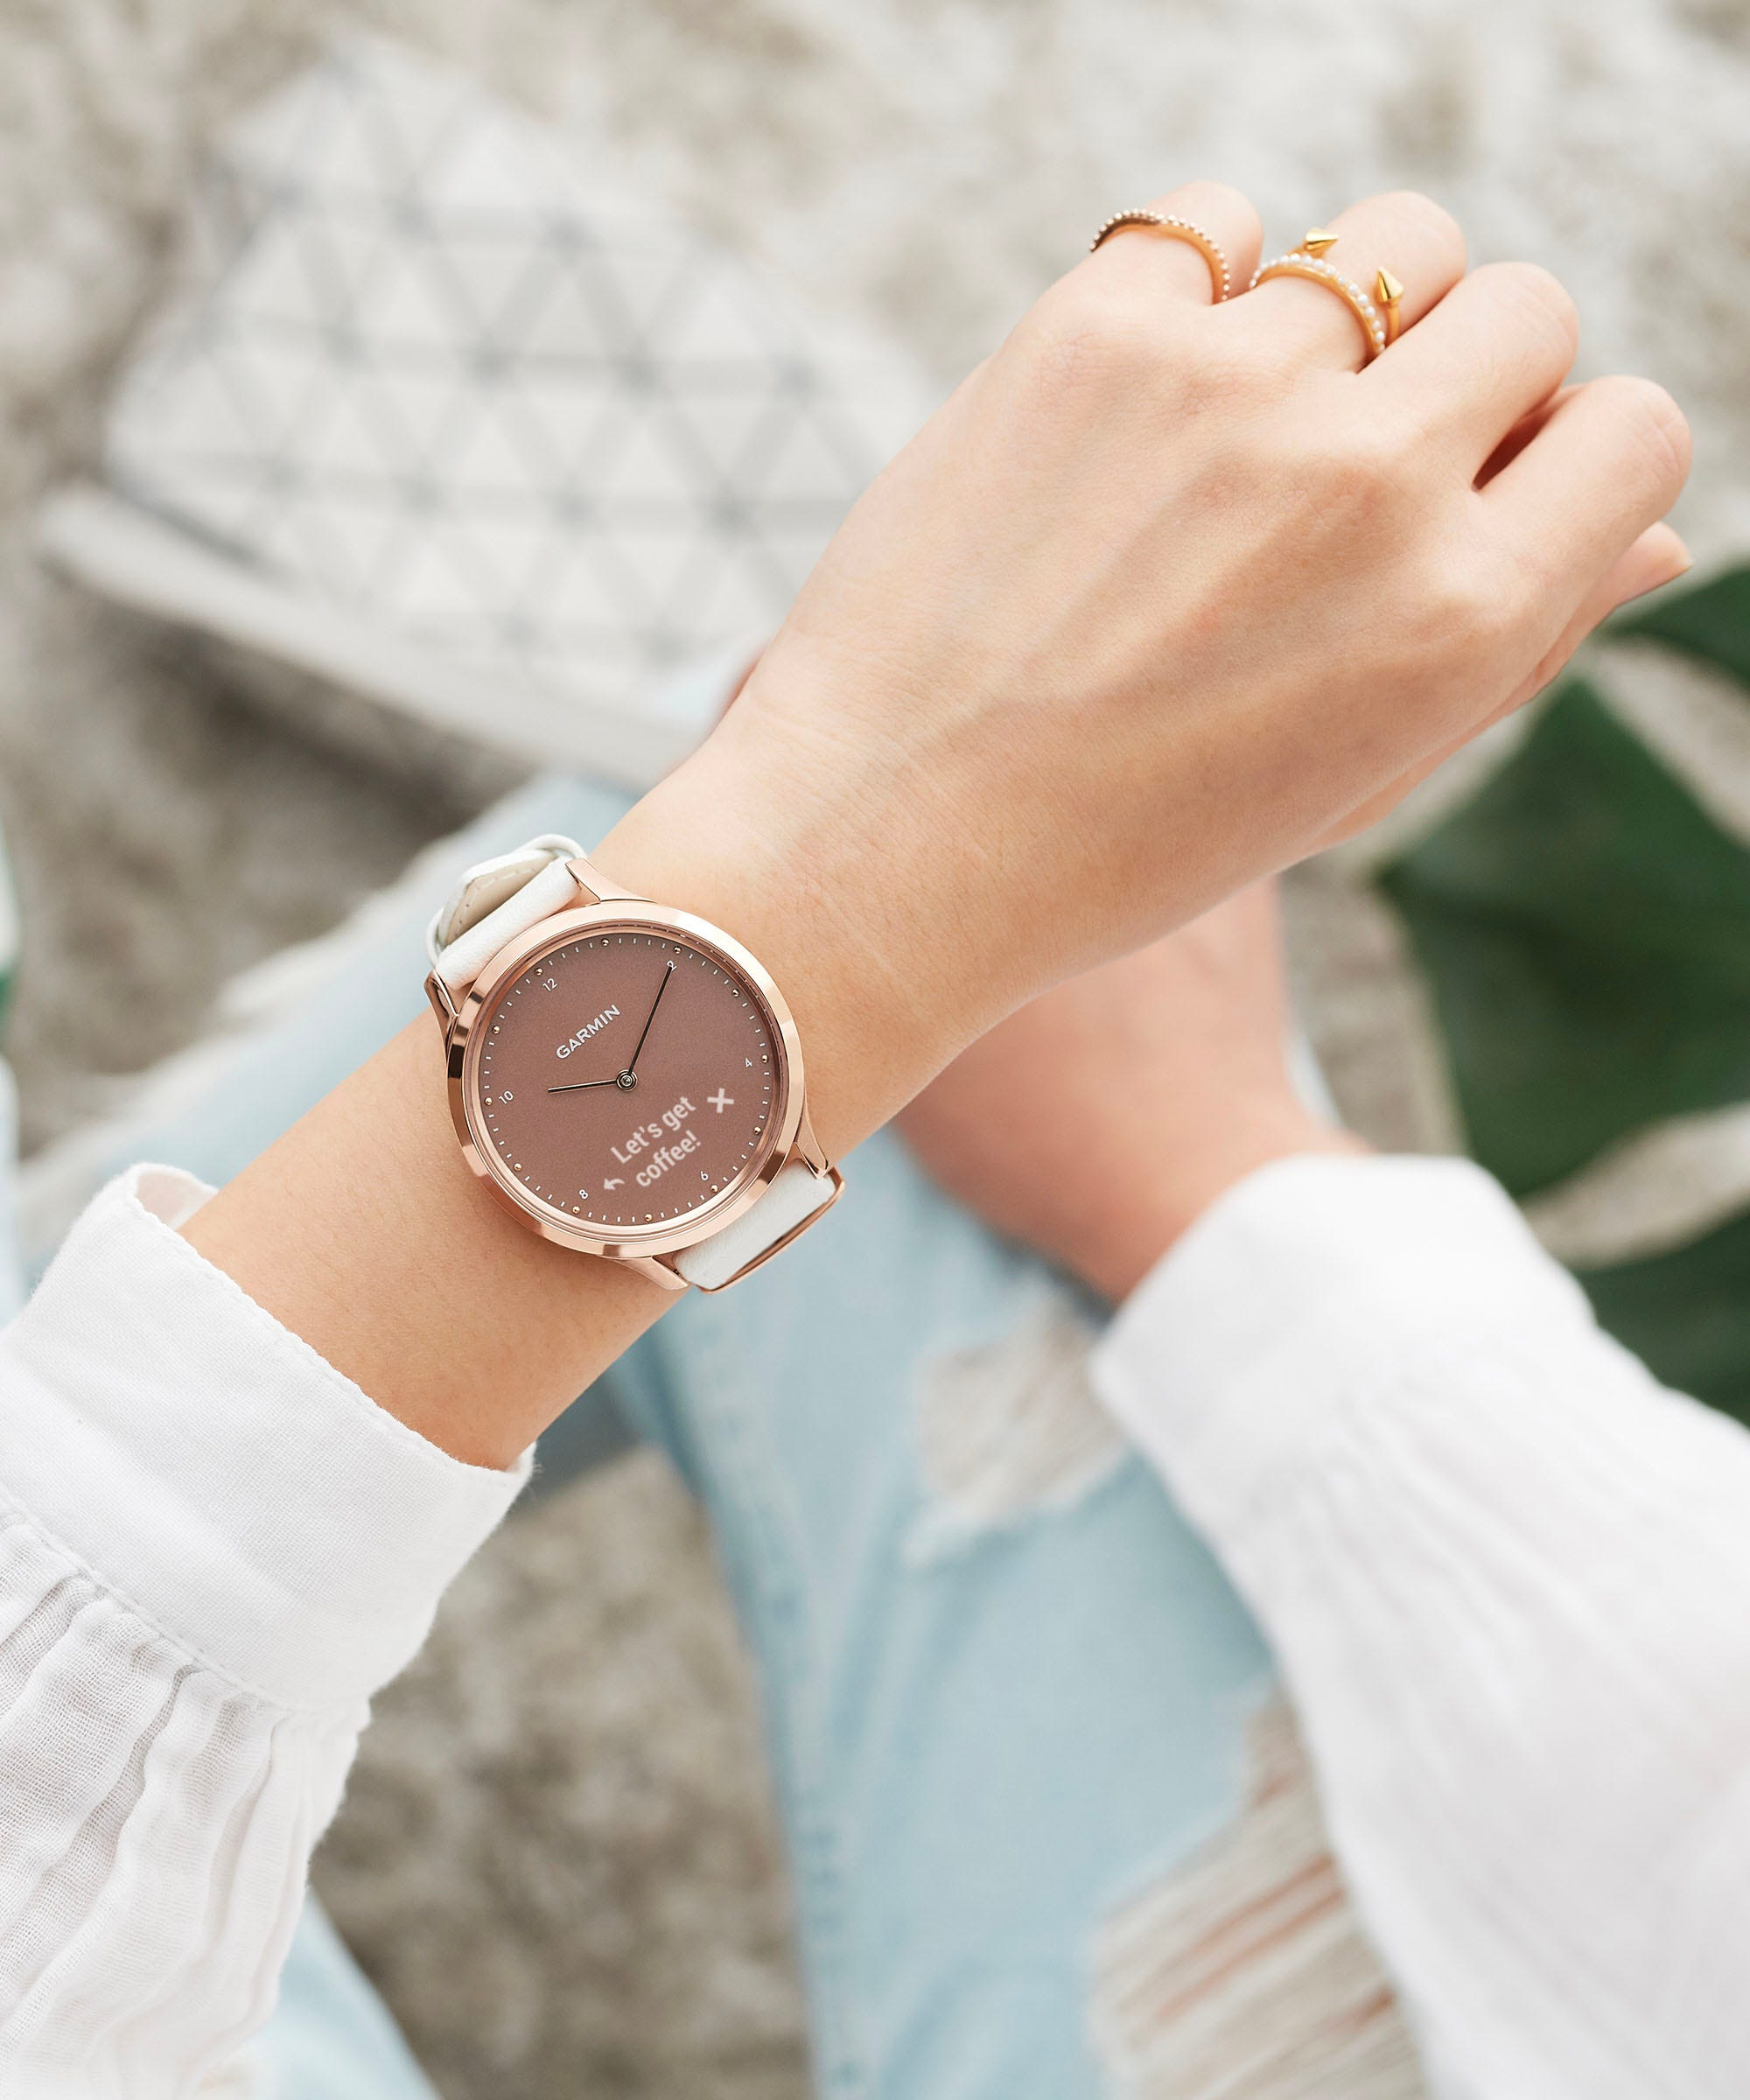 Analog & Tech Meet In This Very Stylish, Very Millennial Smartwatch